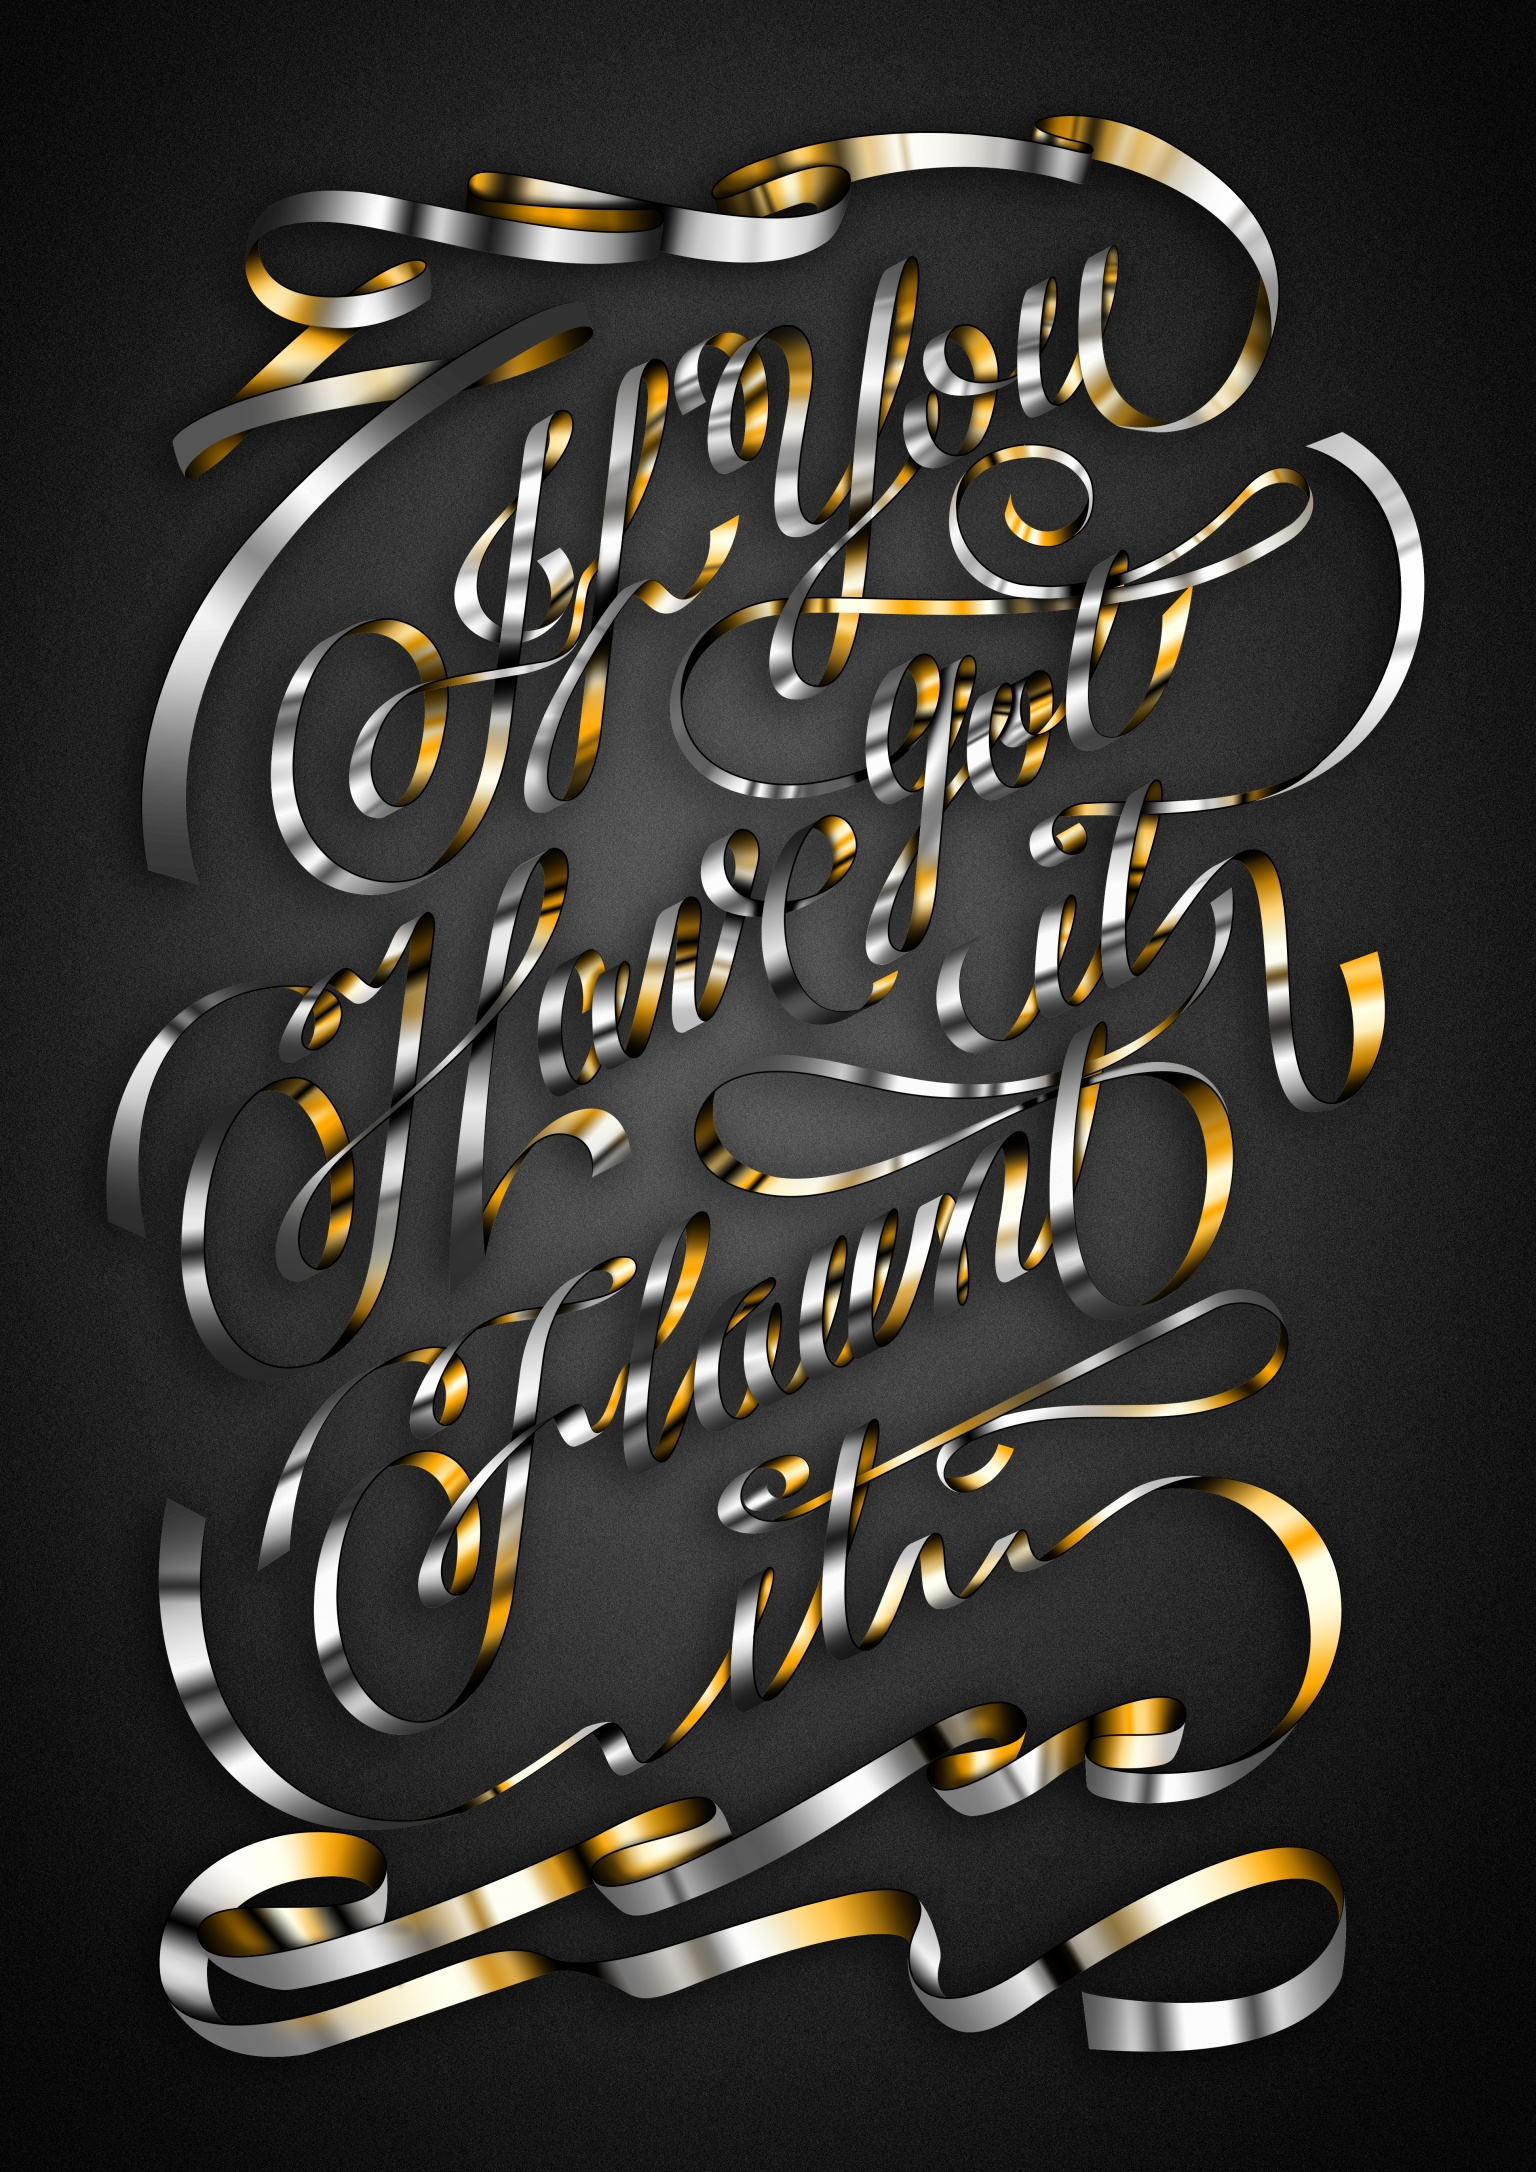 Andy Warhol Lettering